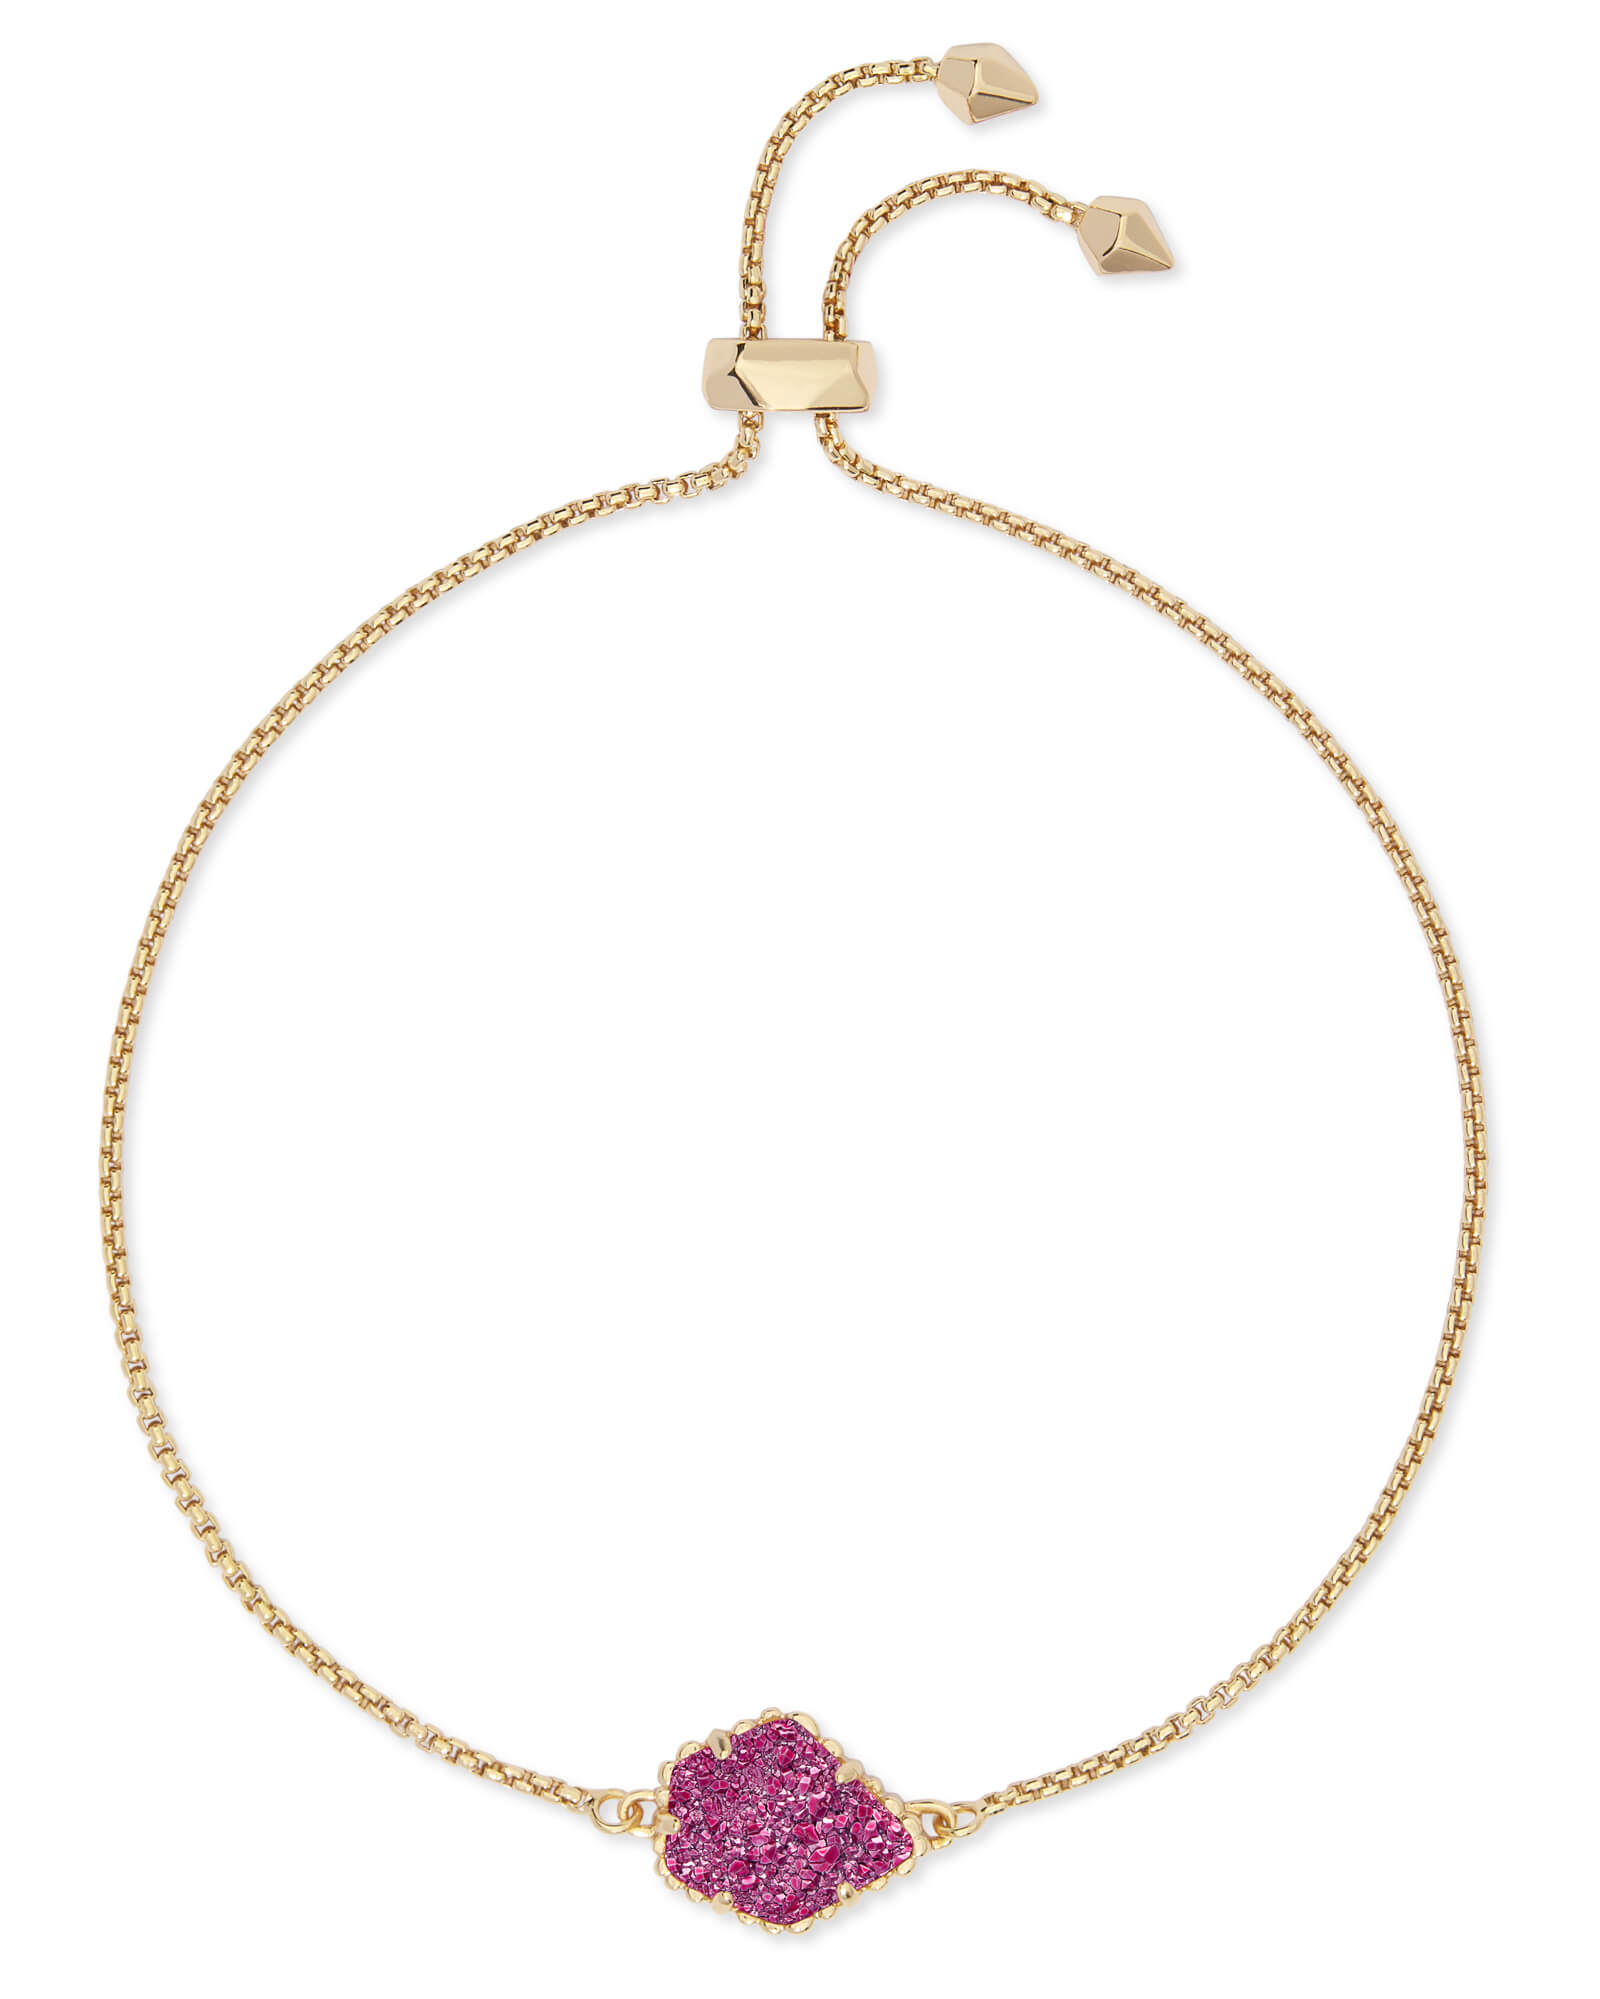 Theo Gold Adjustable Chain Bracelet in Deep Fuchsia Drusy